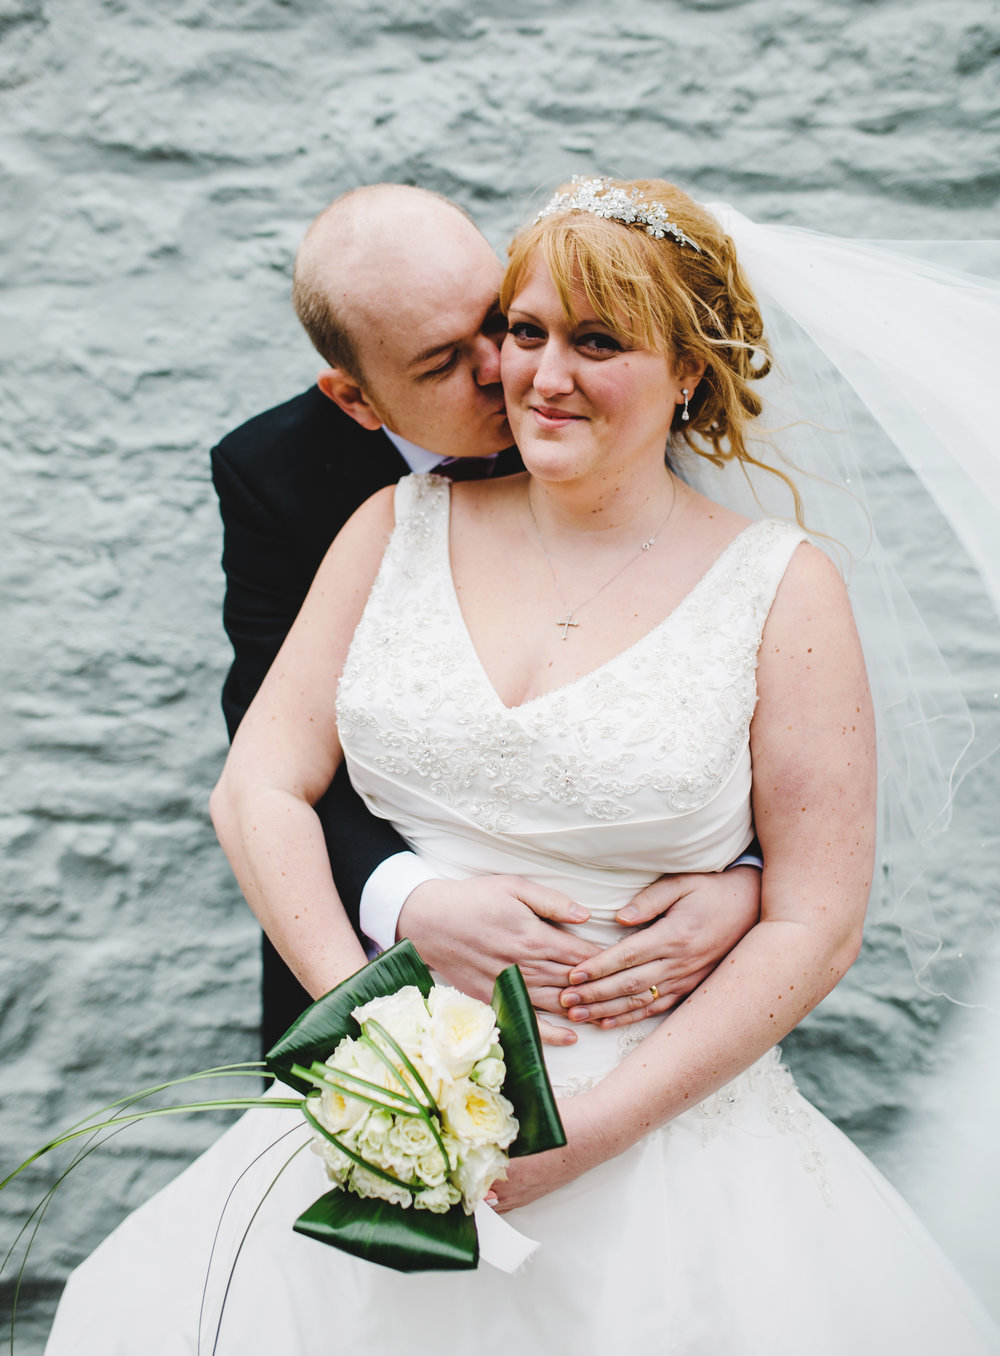 The bride sat on the groom as he kisses her cheek- Creative wedding photography in lancashire